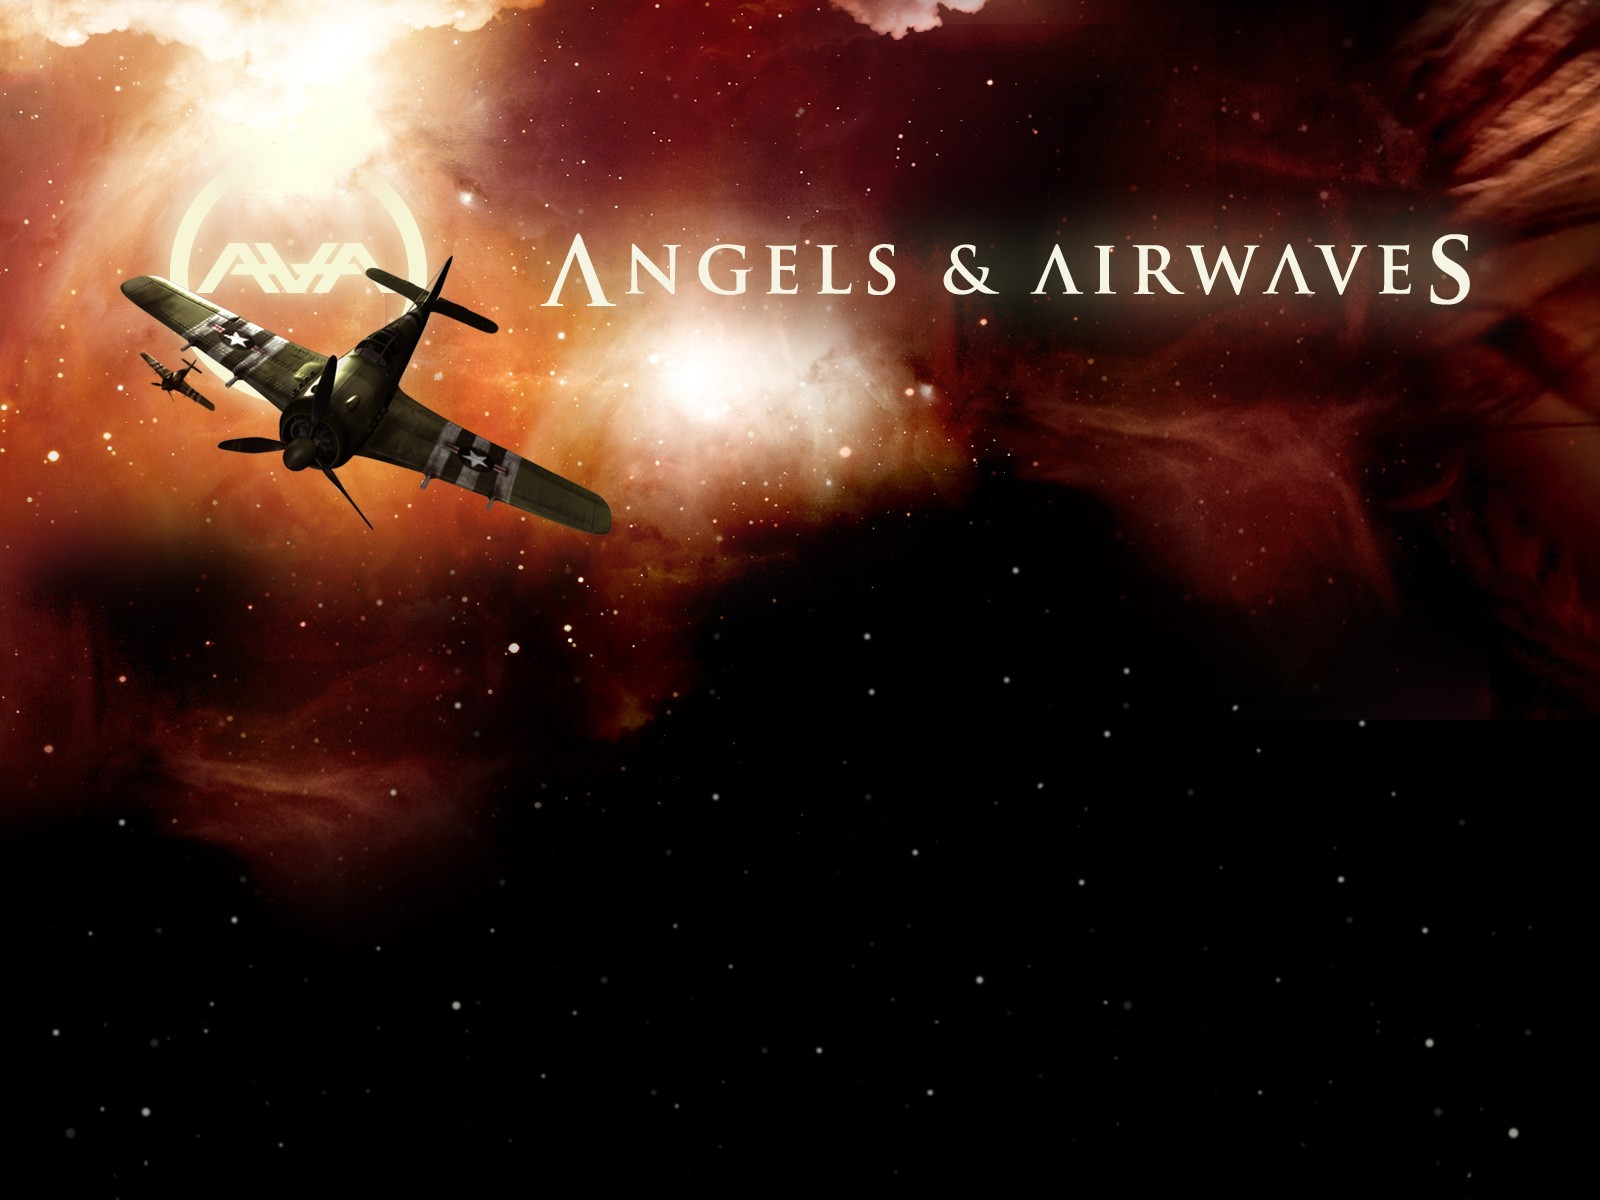 Angel and Airwaves bands HD Wallpaper